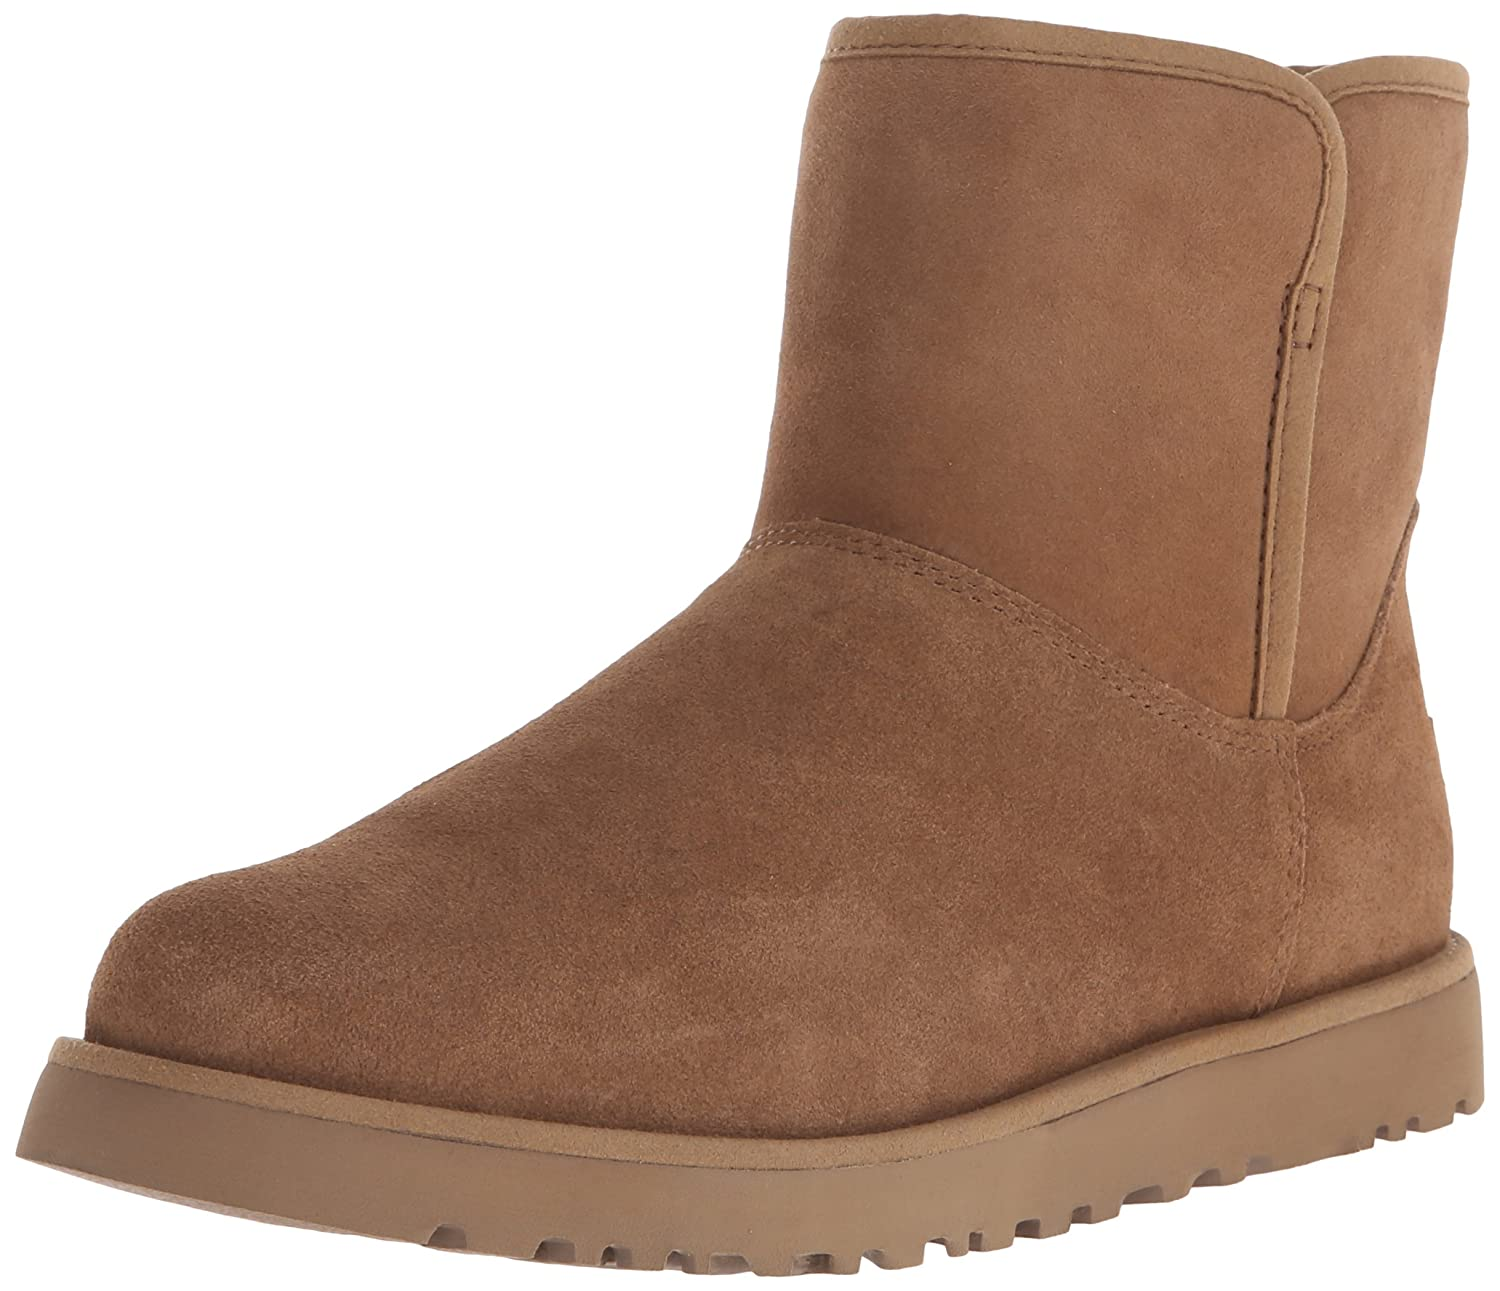 cbb704c2ece UGG Women's Cory Winter Boot, Chestnut, 6.5 B US